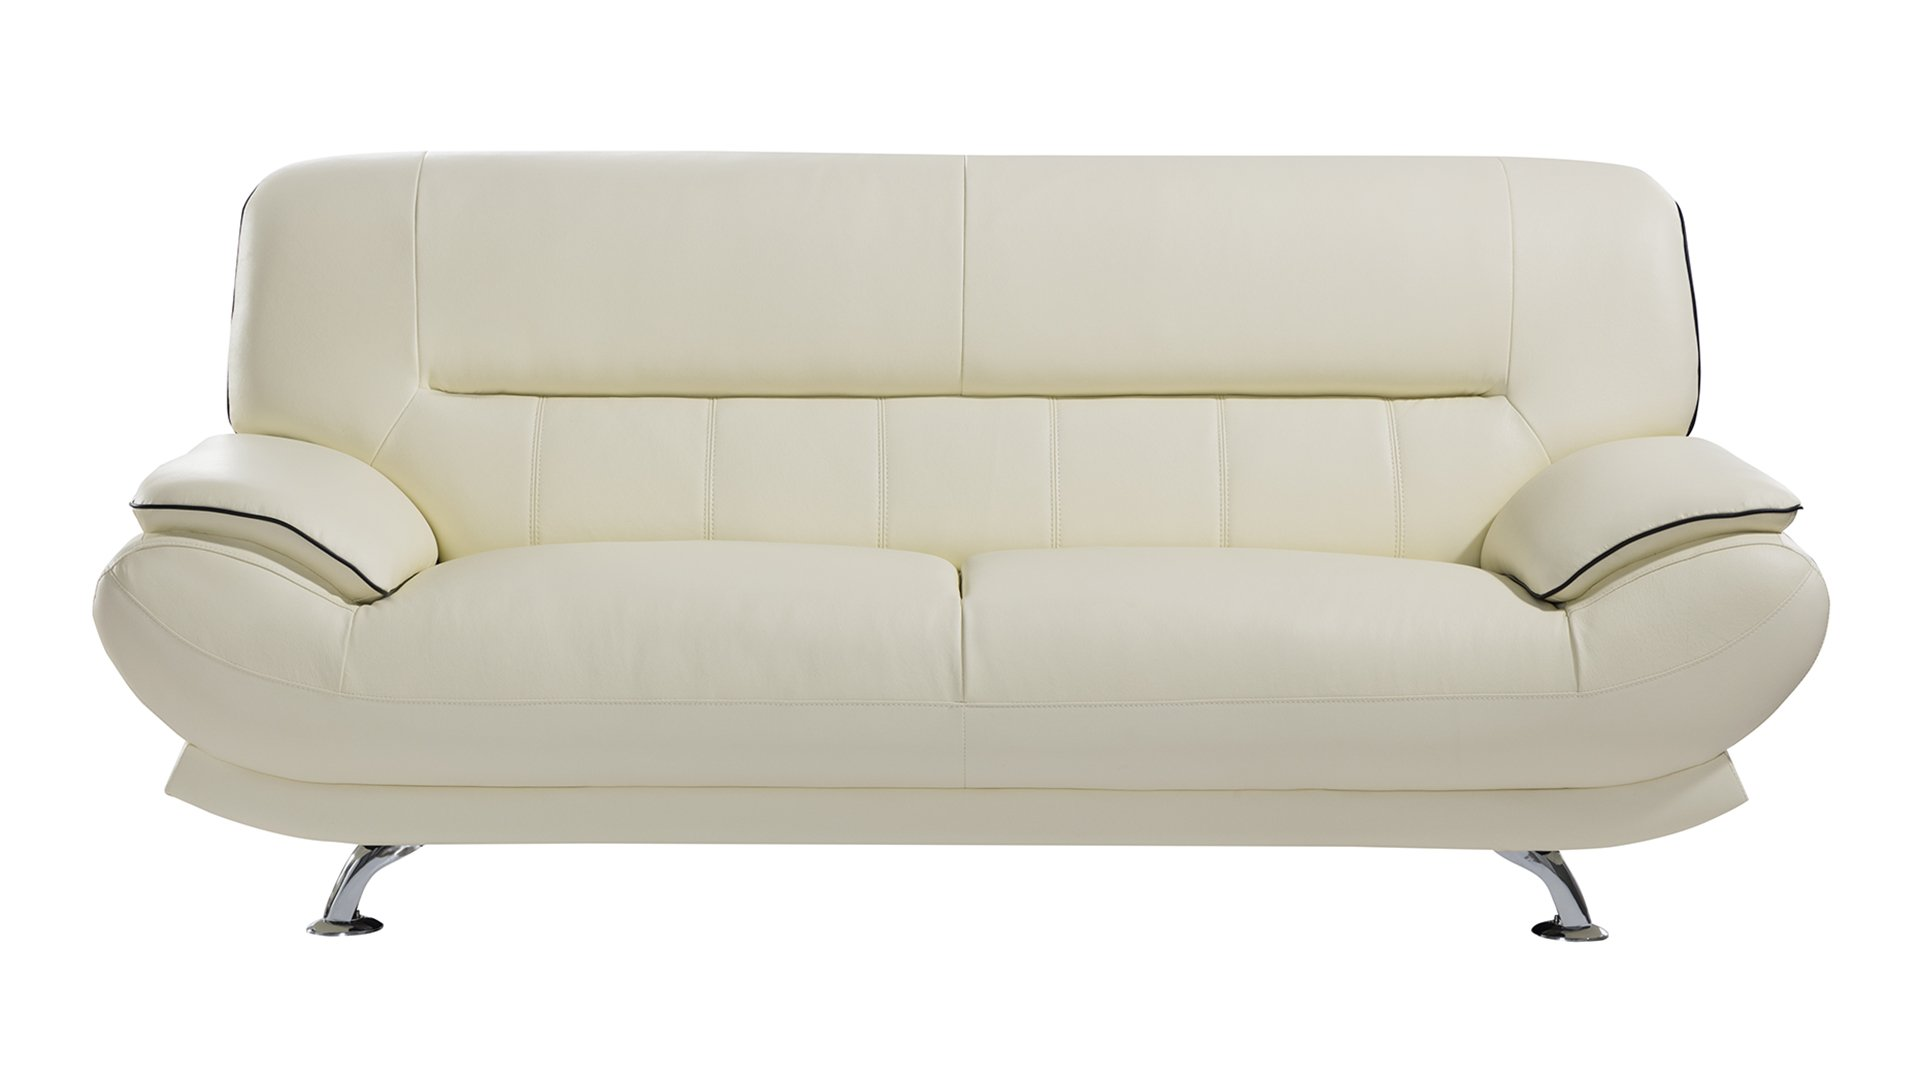 American Eagle Furniture Arcadia Collection Genuine Leather Living Room Sofa with Pillow Top Armrests, Ivory